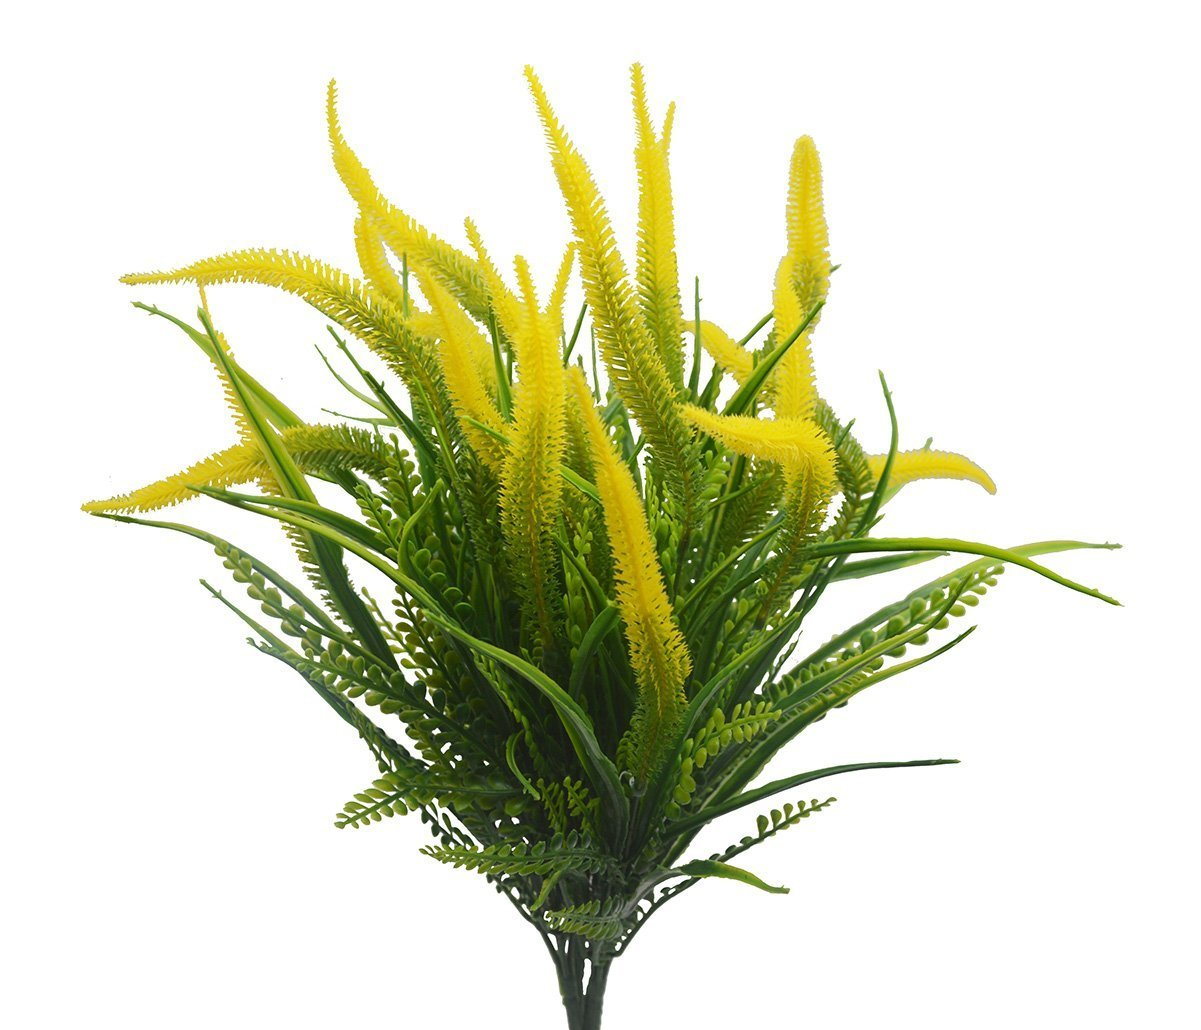 Artificial Flowers for Decoration, 4Pcs Faux Lifelike Plastic Setaria Shrubs Plants Simulation Greenery Bushes Indoor Outside Home Garden Office Wedding Decor, Yellow